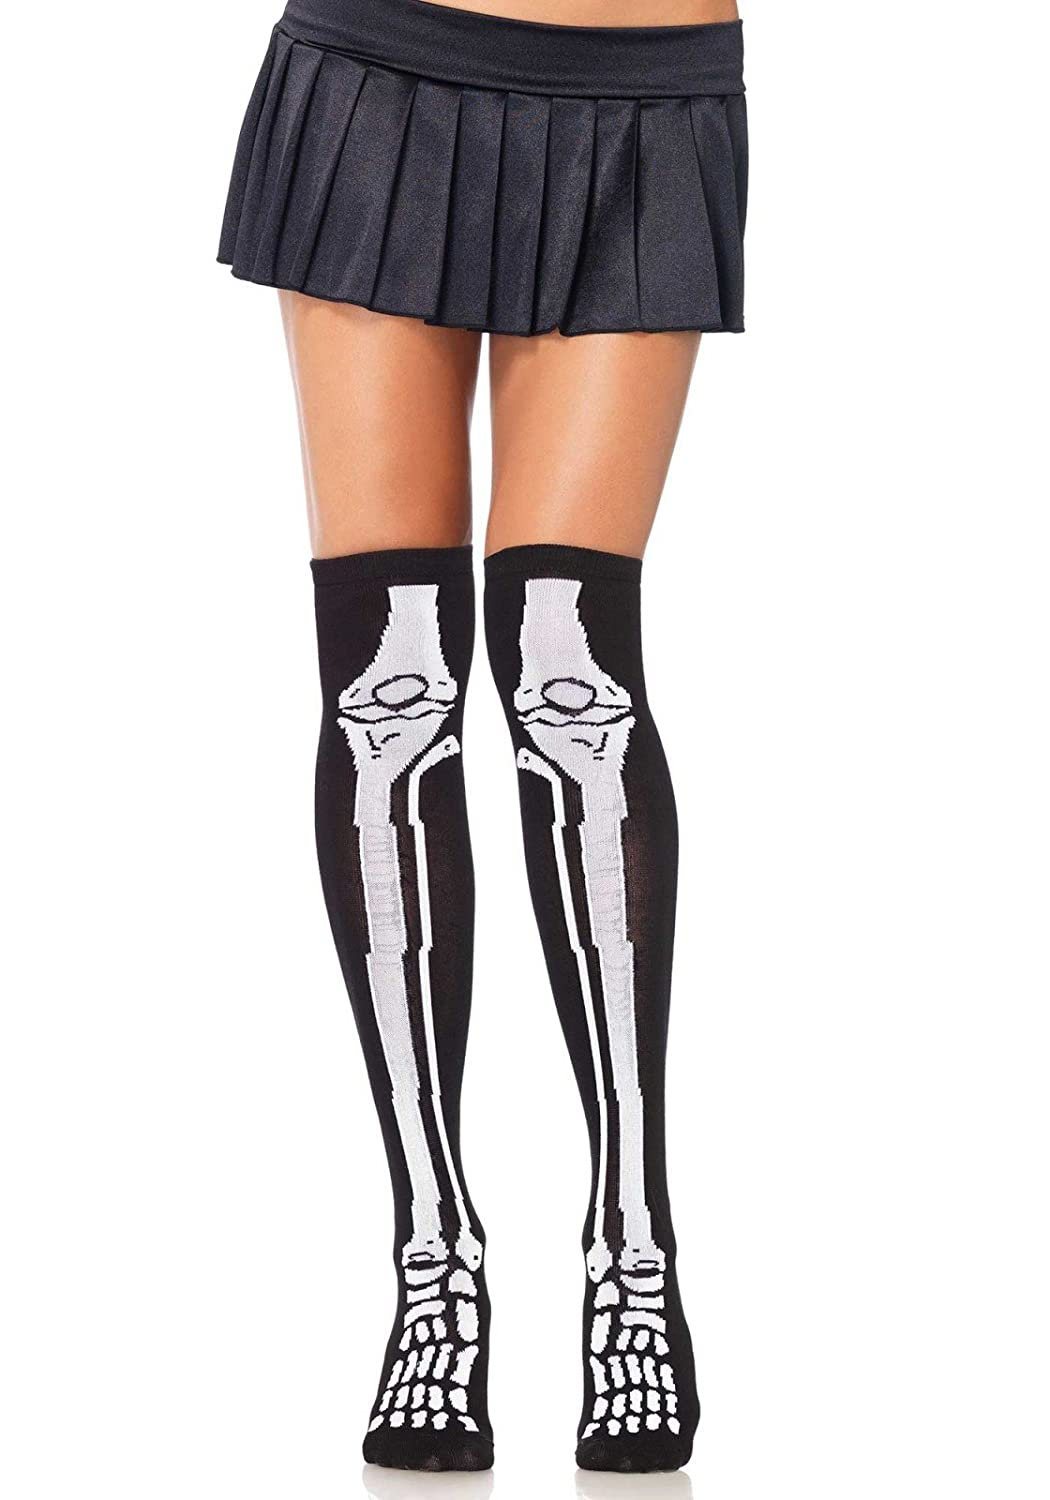 Leg Avenue Women's Acrylic Skeleton Over The Knee Socks Black/White One Size 559622007